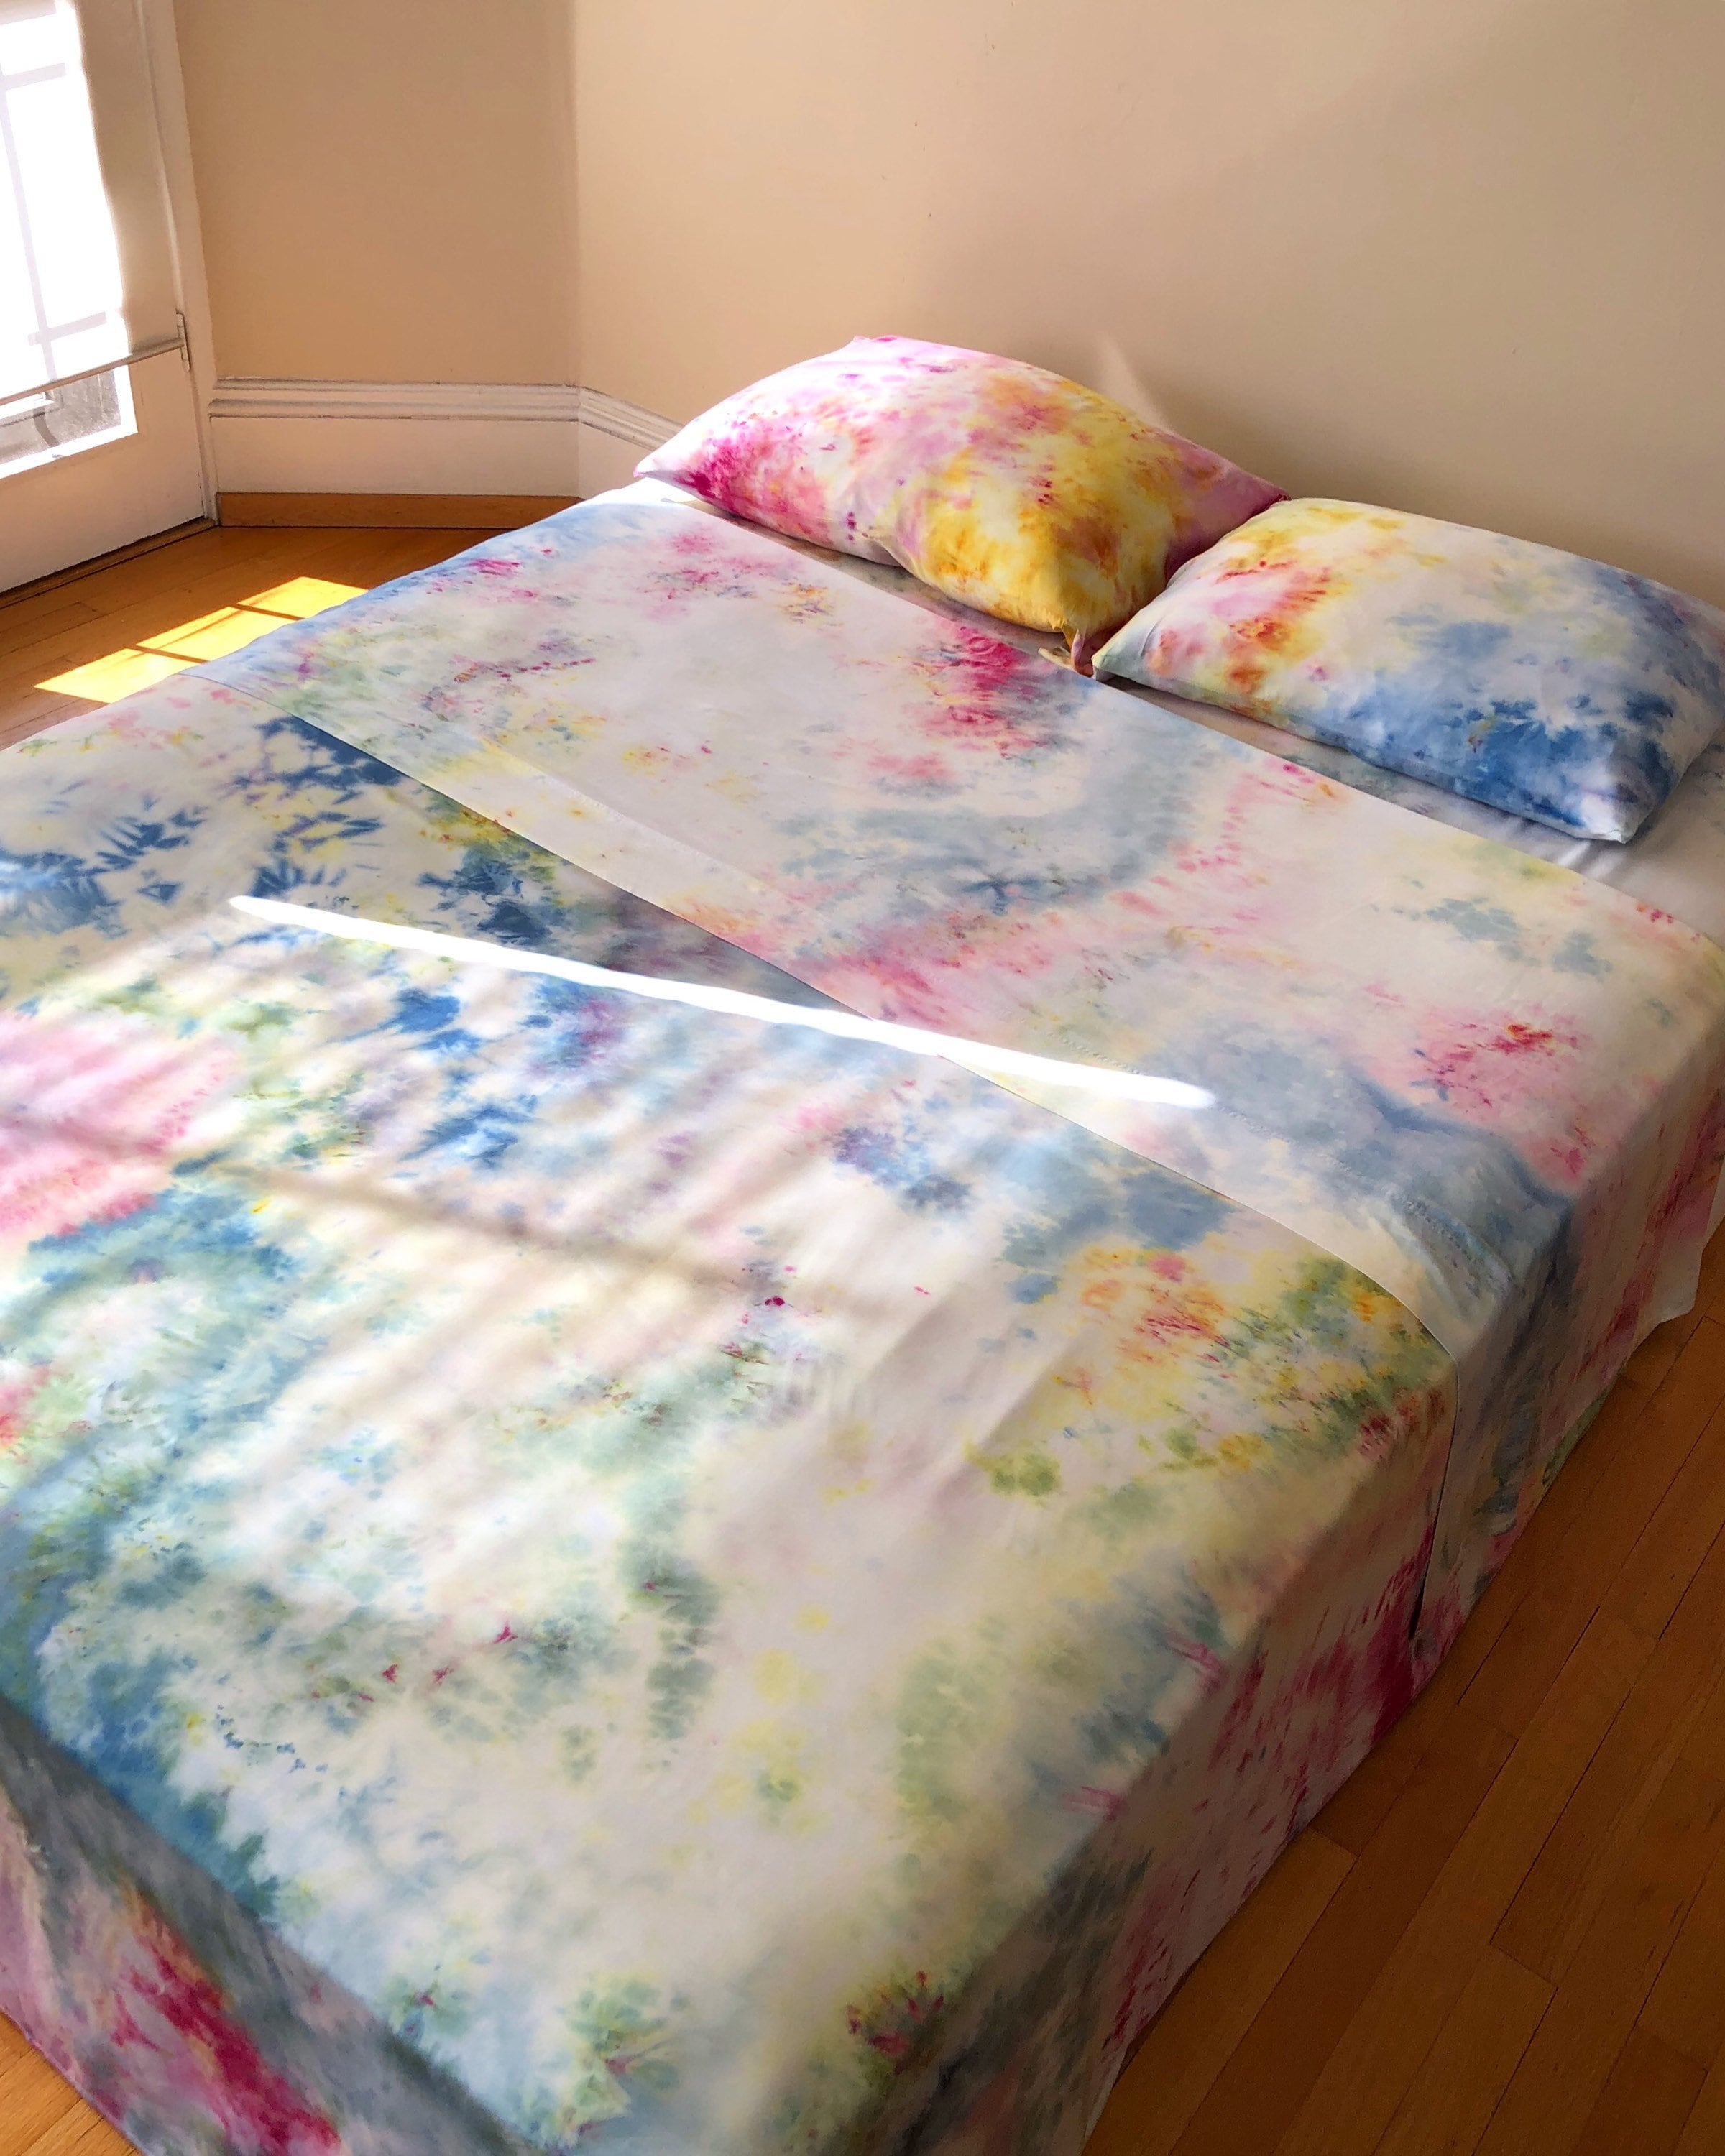 Bamboo Sheets Toxic: Pastel Day Dream Queen Sized Sheet Set